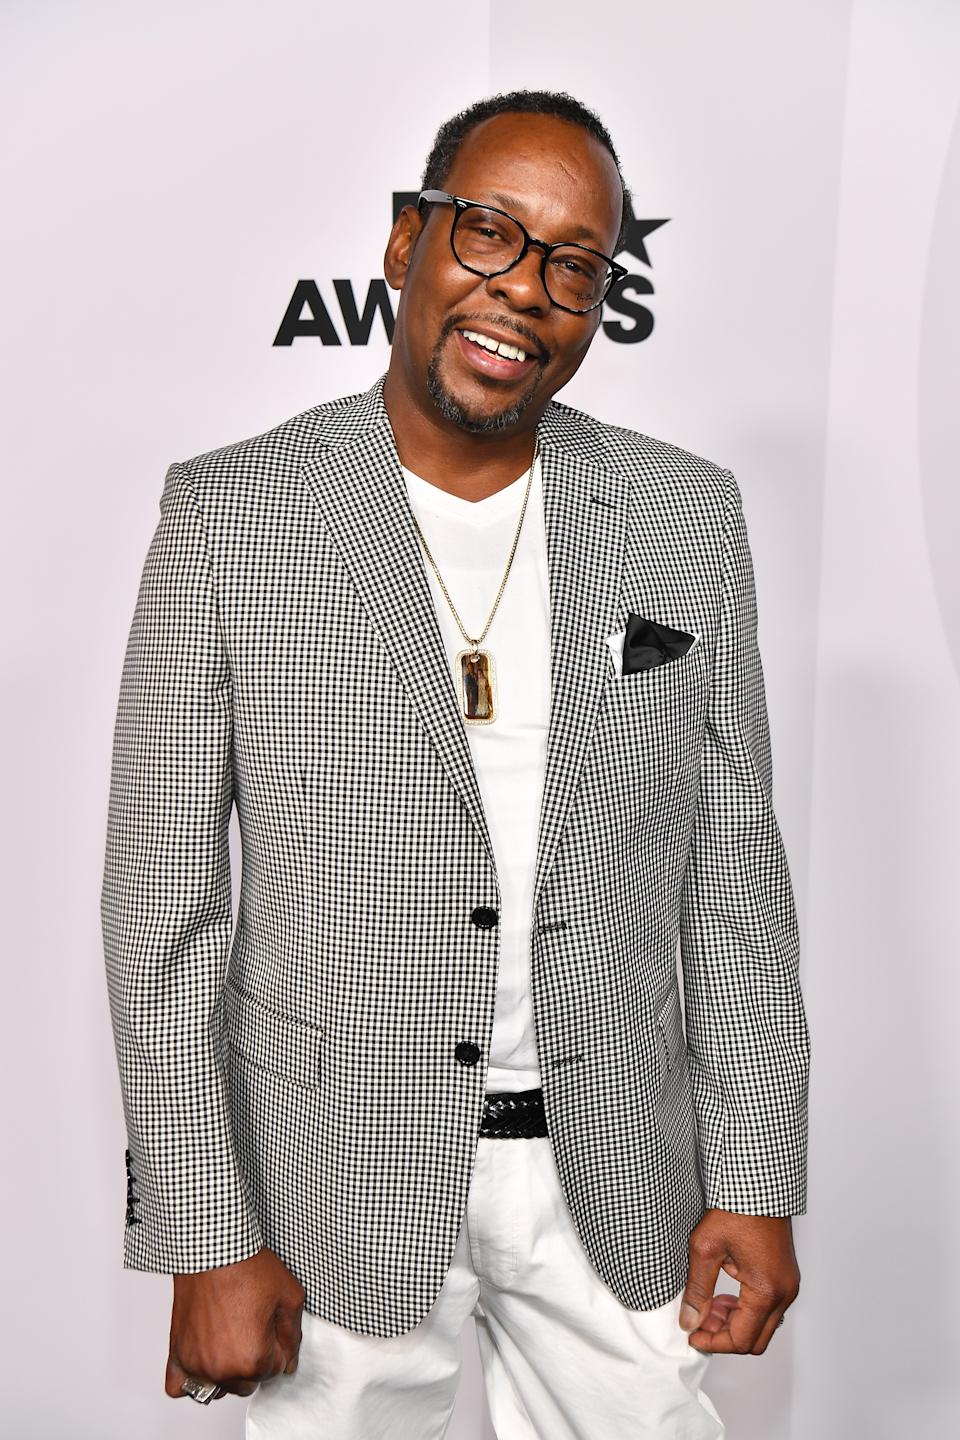 LOS ANGELES, CALIFORNIA - JUNE 20: Singer Bobby Brown attends PREMIX Hosted By Connie Orlando at The Sunset Room on June 20, 2019 in Los Angeles, California. (Photo by Paras Griffin/Getty Images for BET)